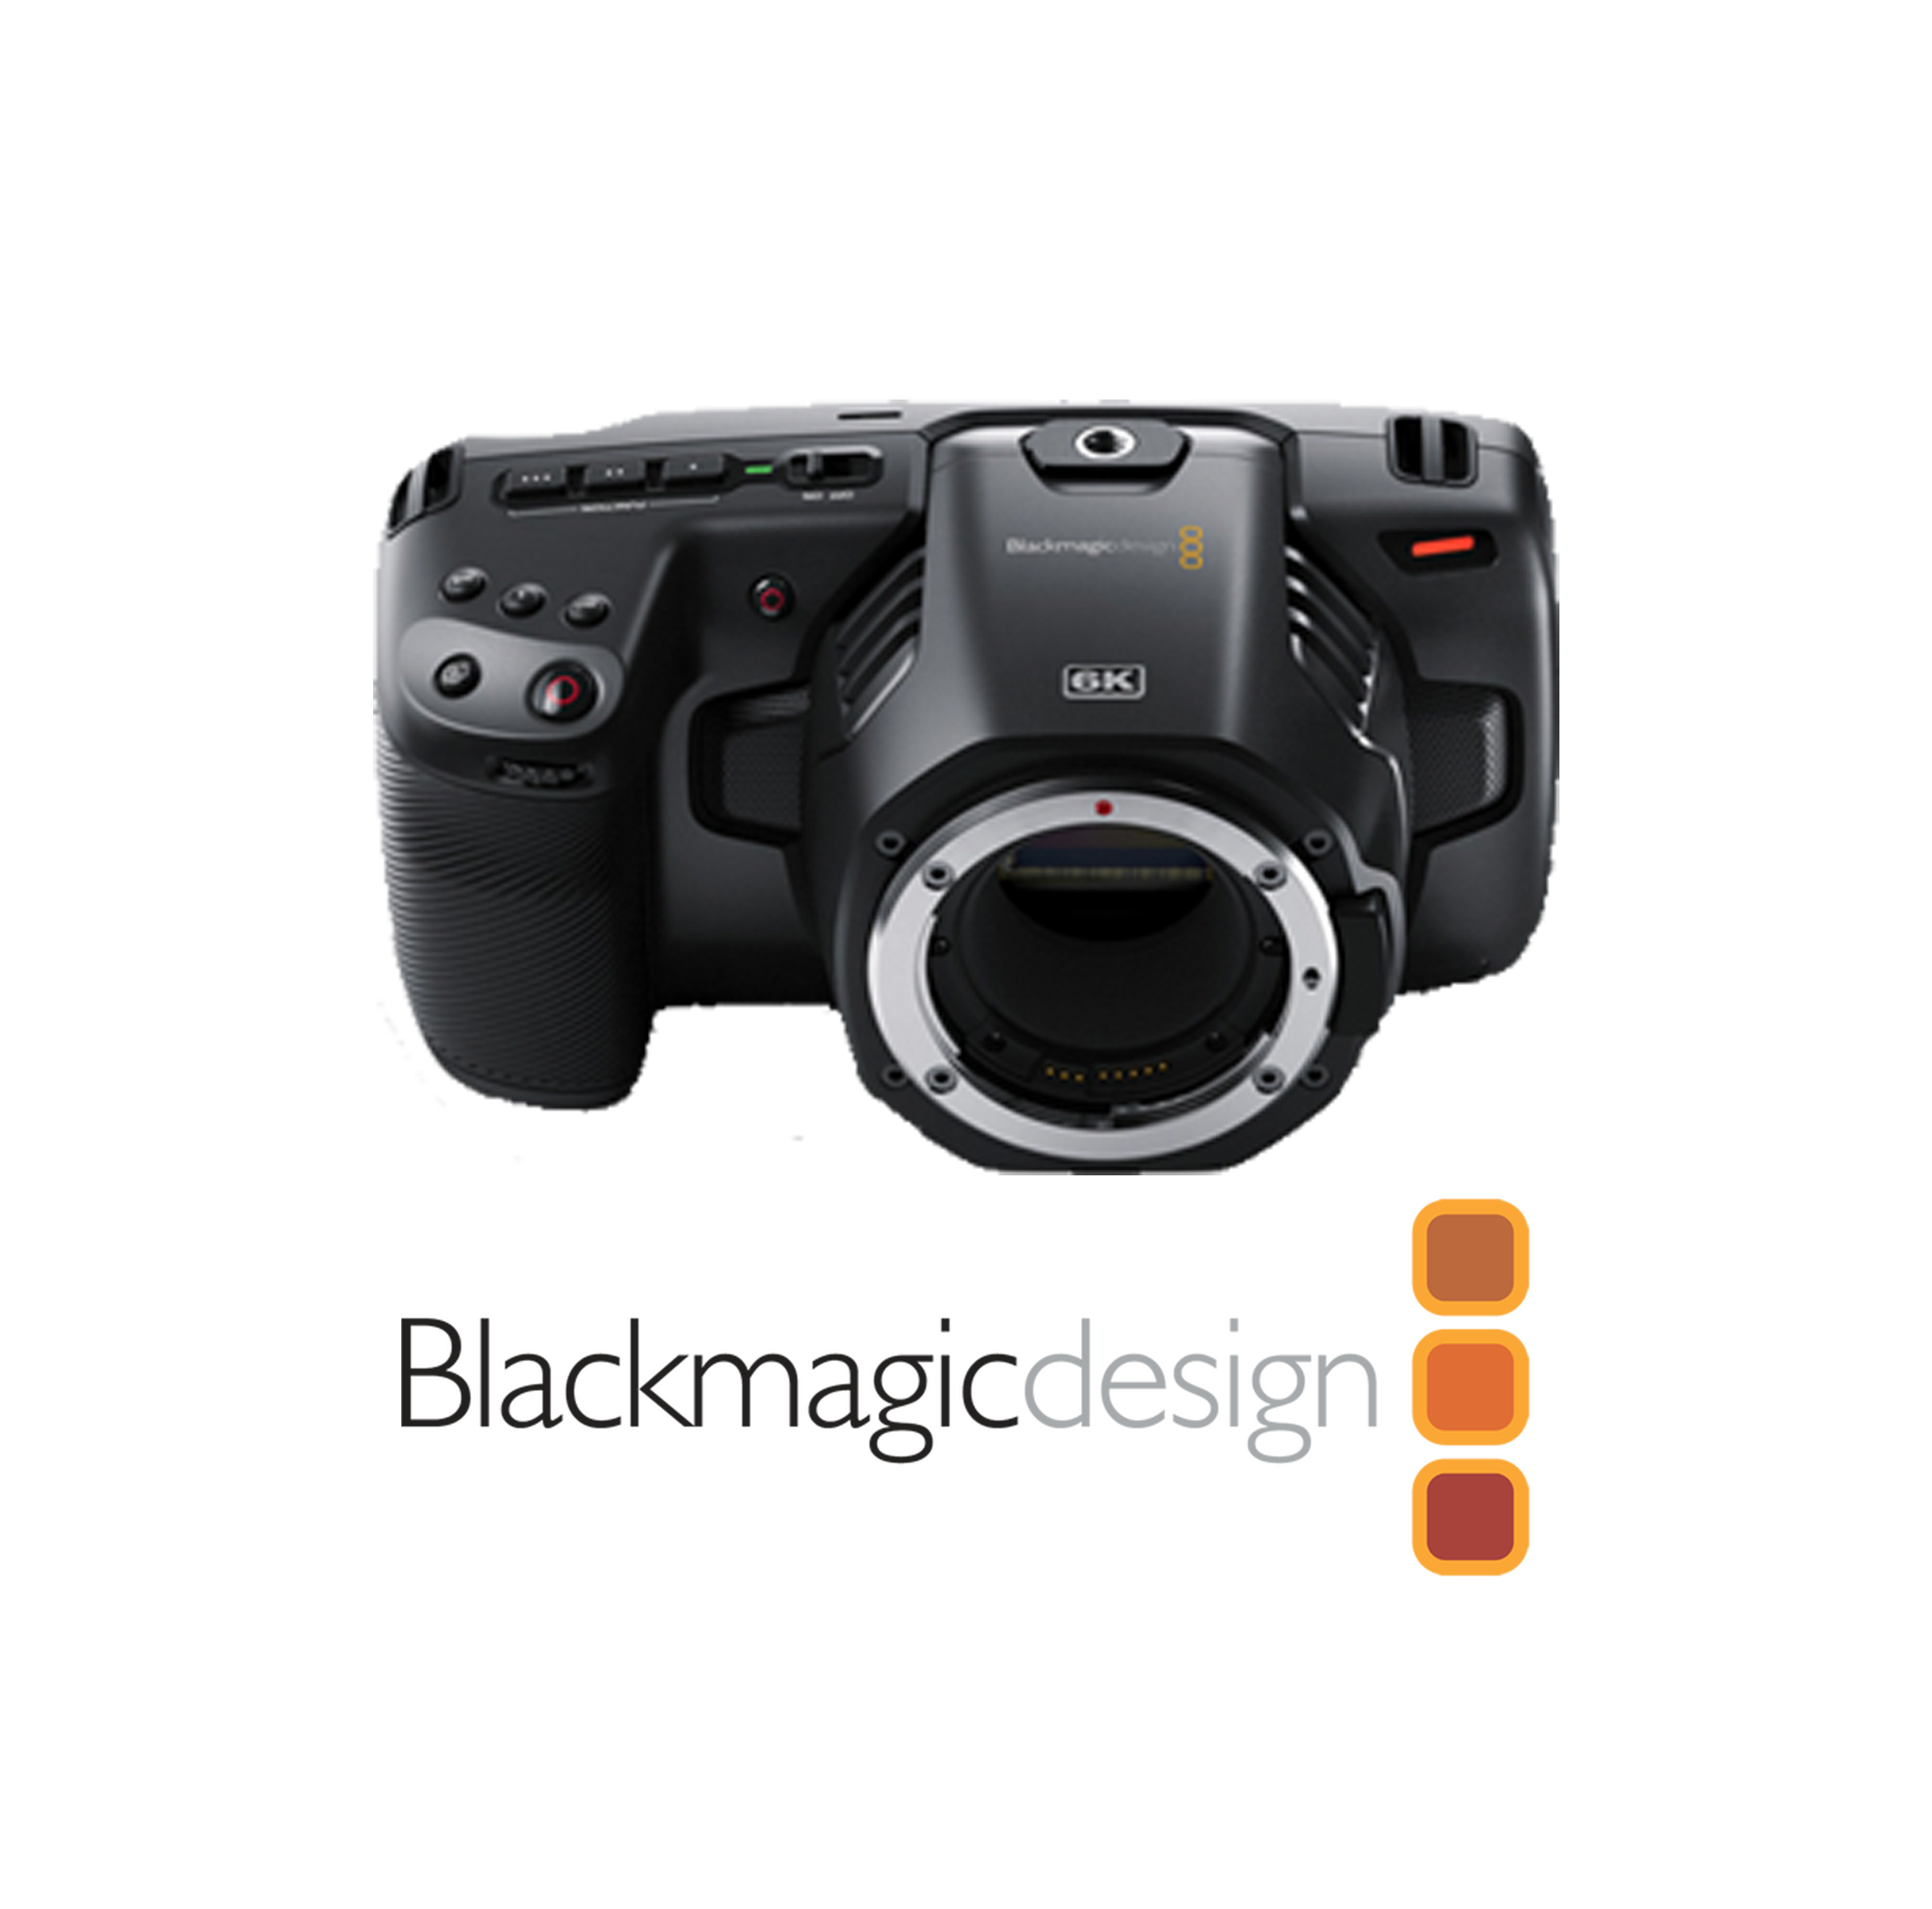 Blackmagic Design Pocket 6K